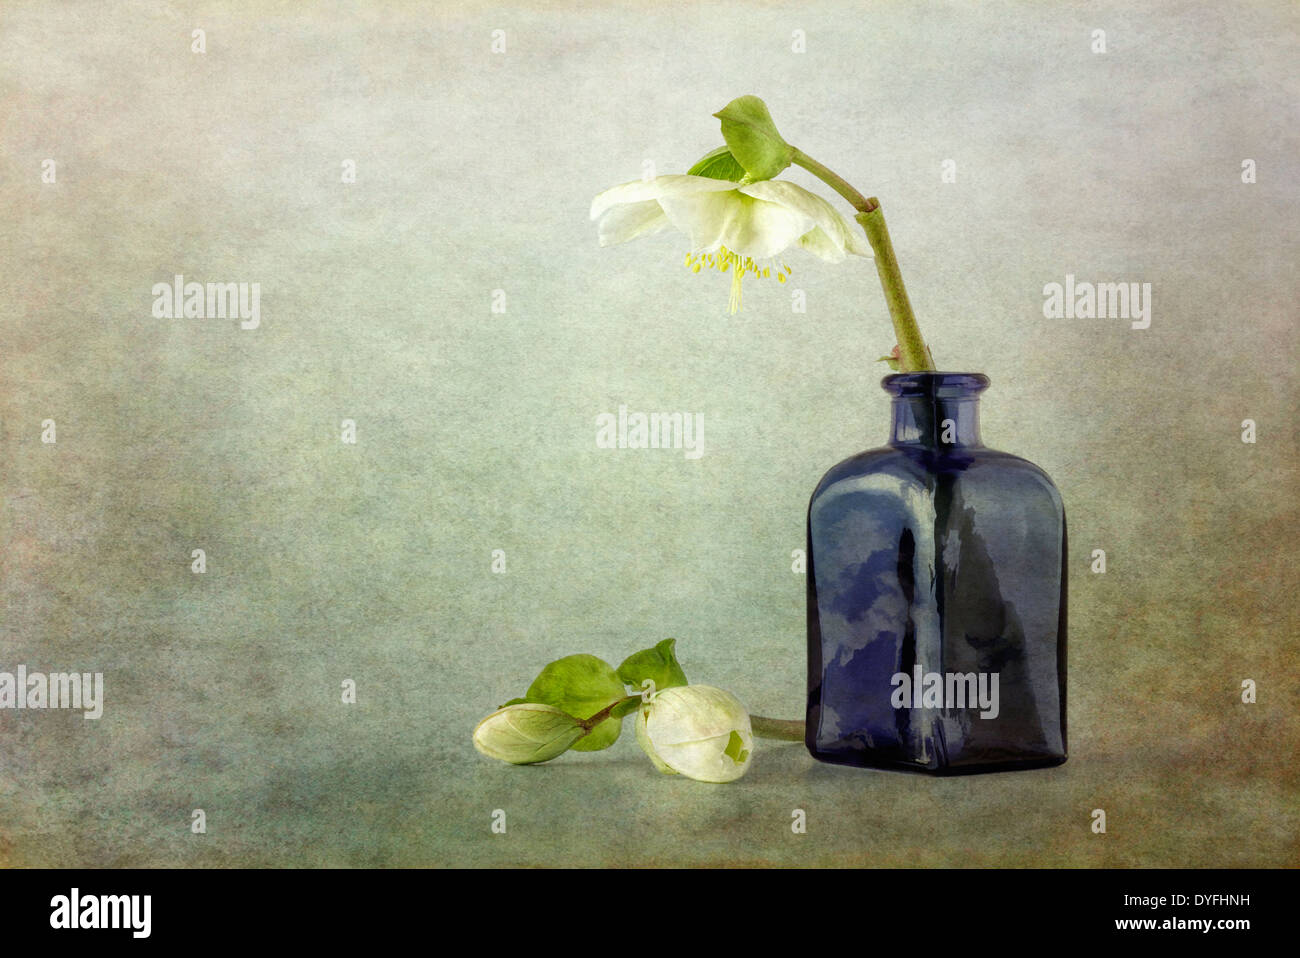 Hellebores and blue glass vase with texture overlay - Stock Image